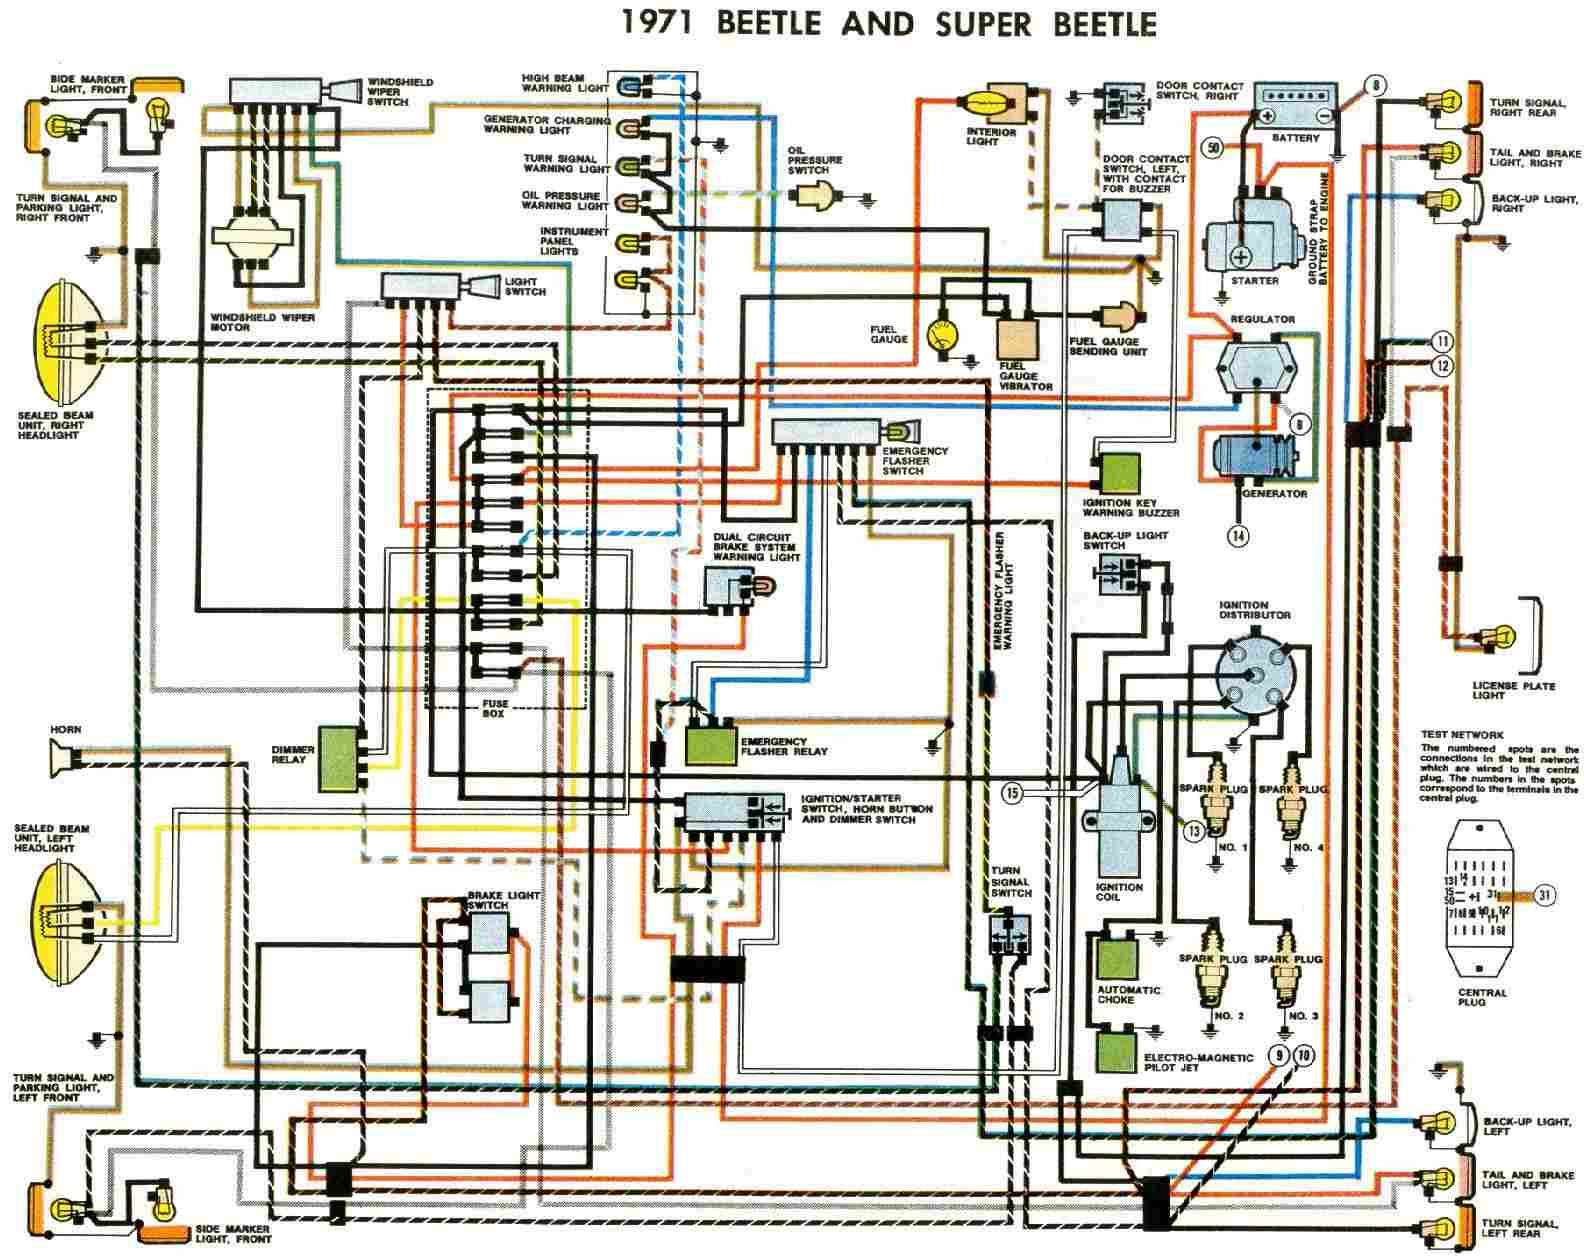 2012 Nissan Fuse Diagram Auto Electrical Wiring 2005 Accord O2 Free 1971 Vw Beetle And Super